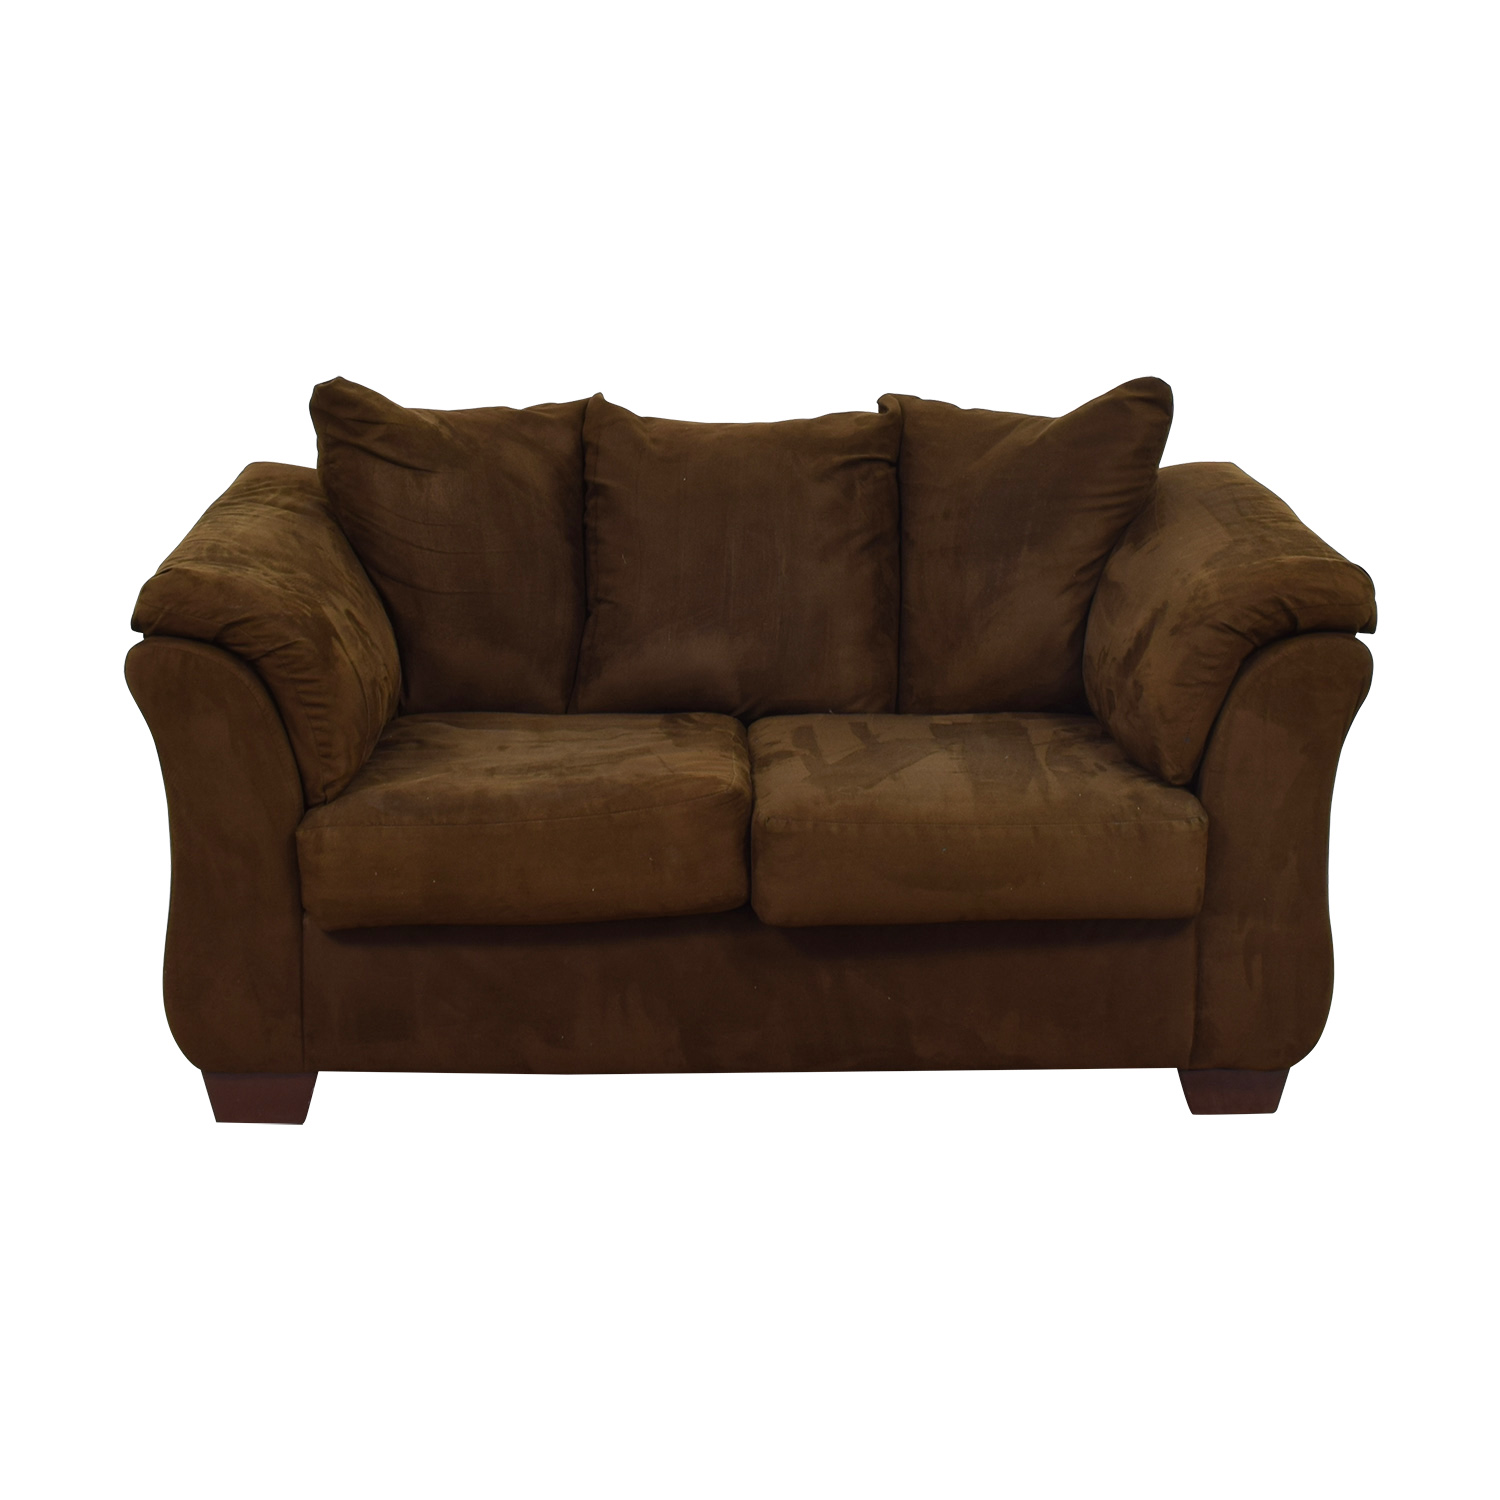 Ashley Furniture Ashley Furniture Two- Cushion Brown Loveseat discount